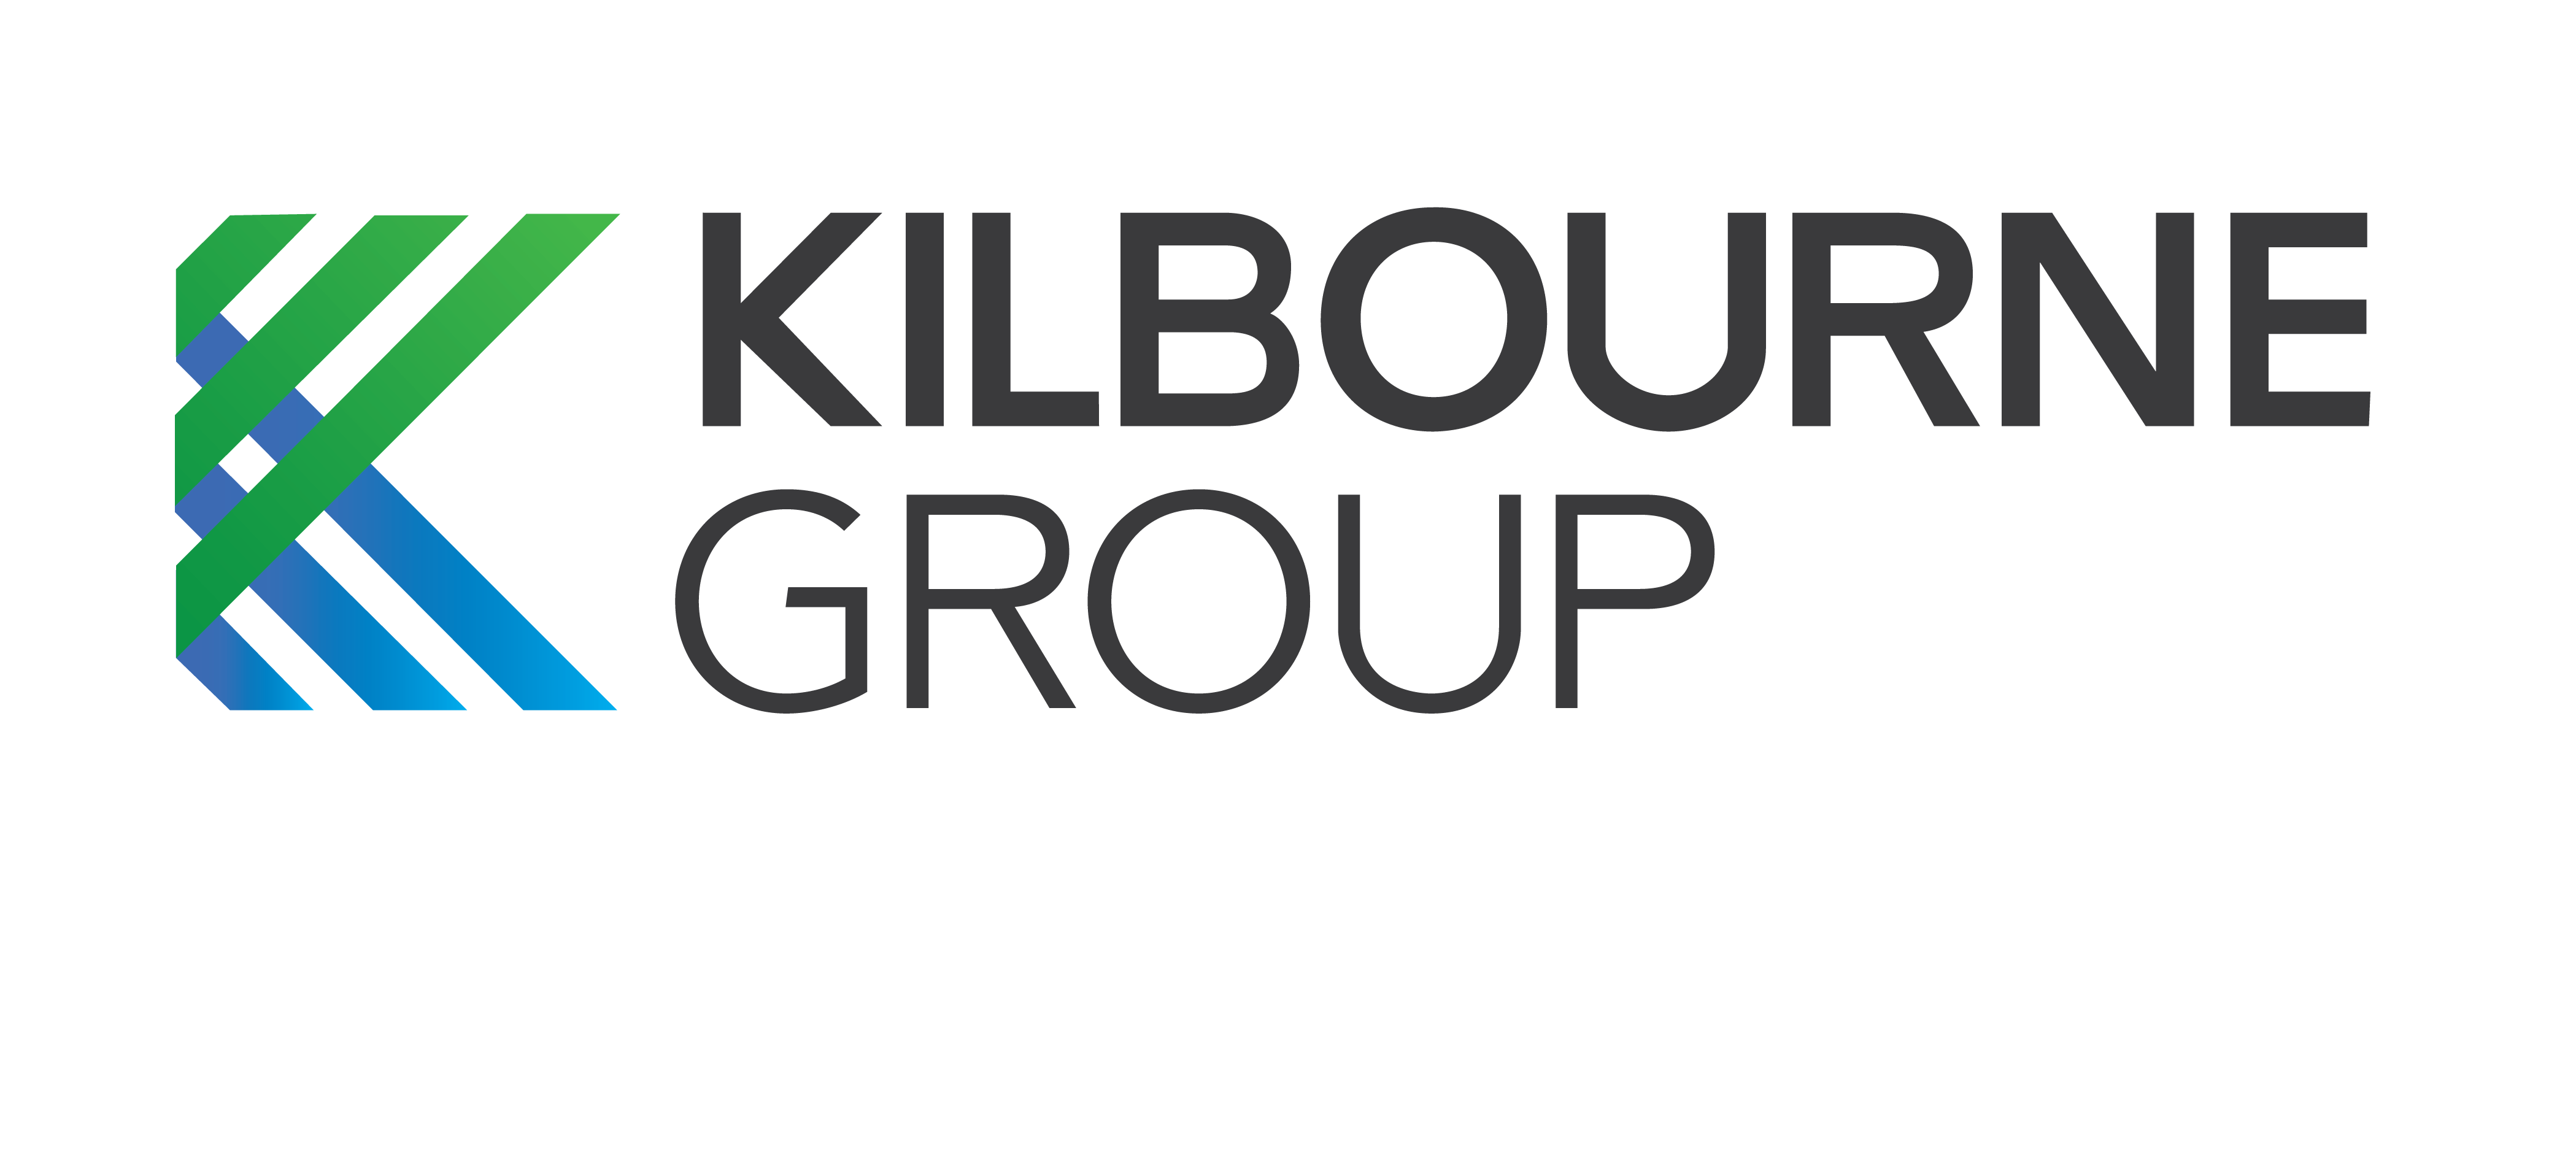 Kilbourne-Group-Logo-01